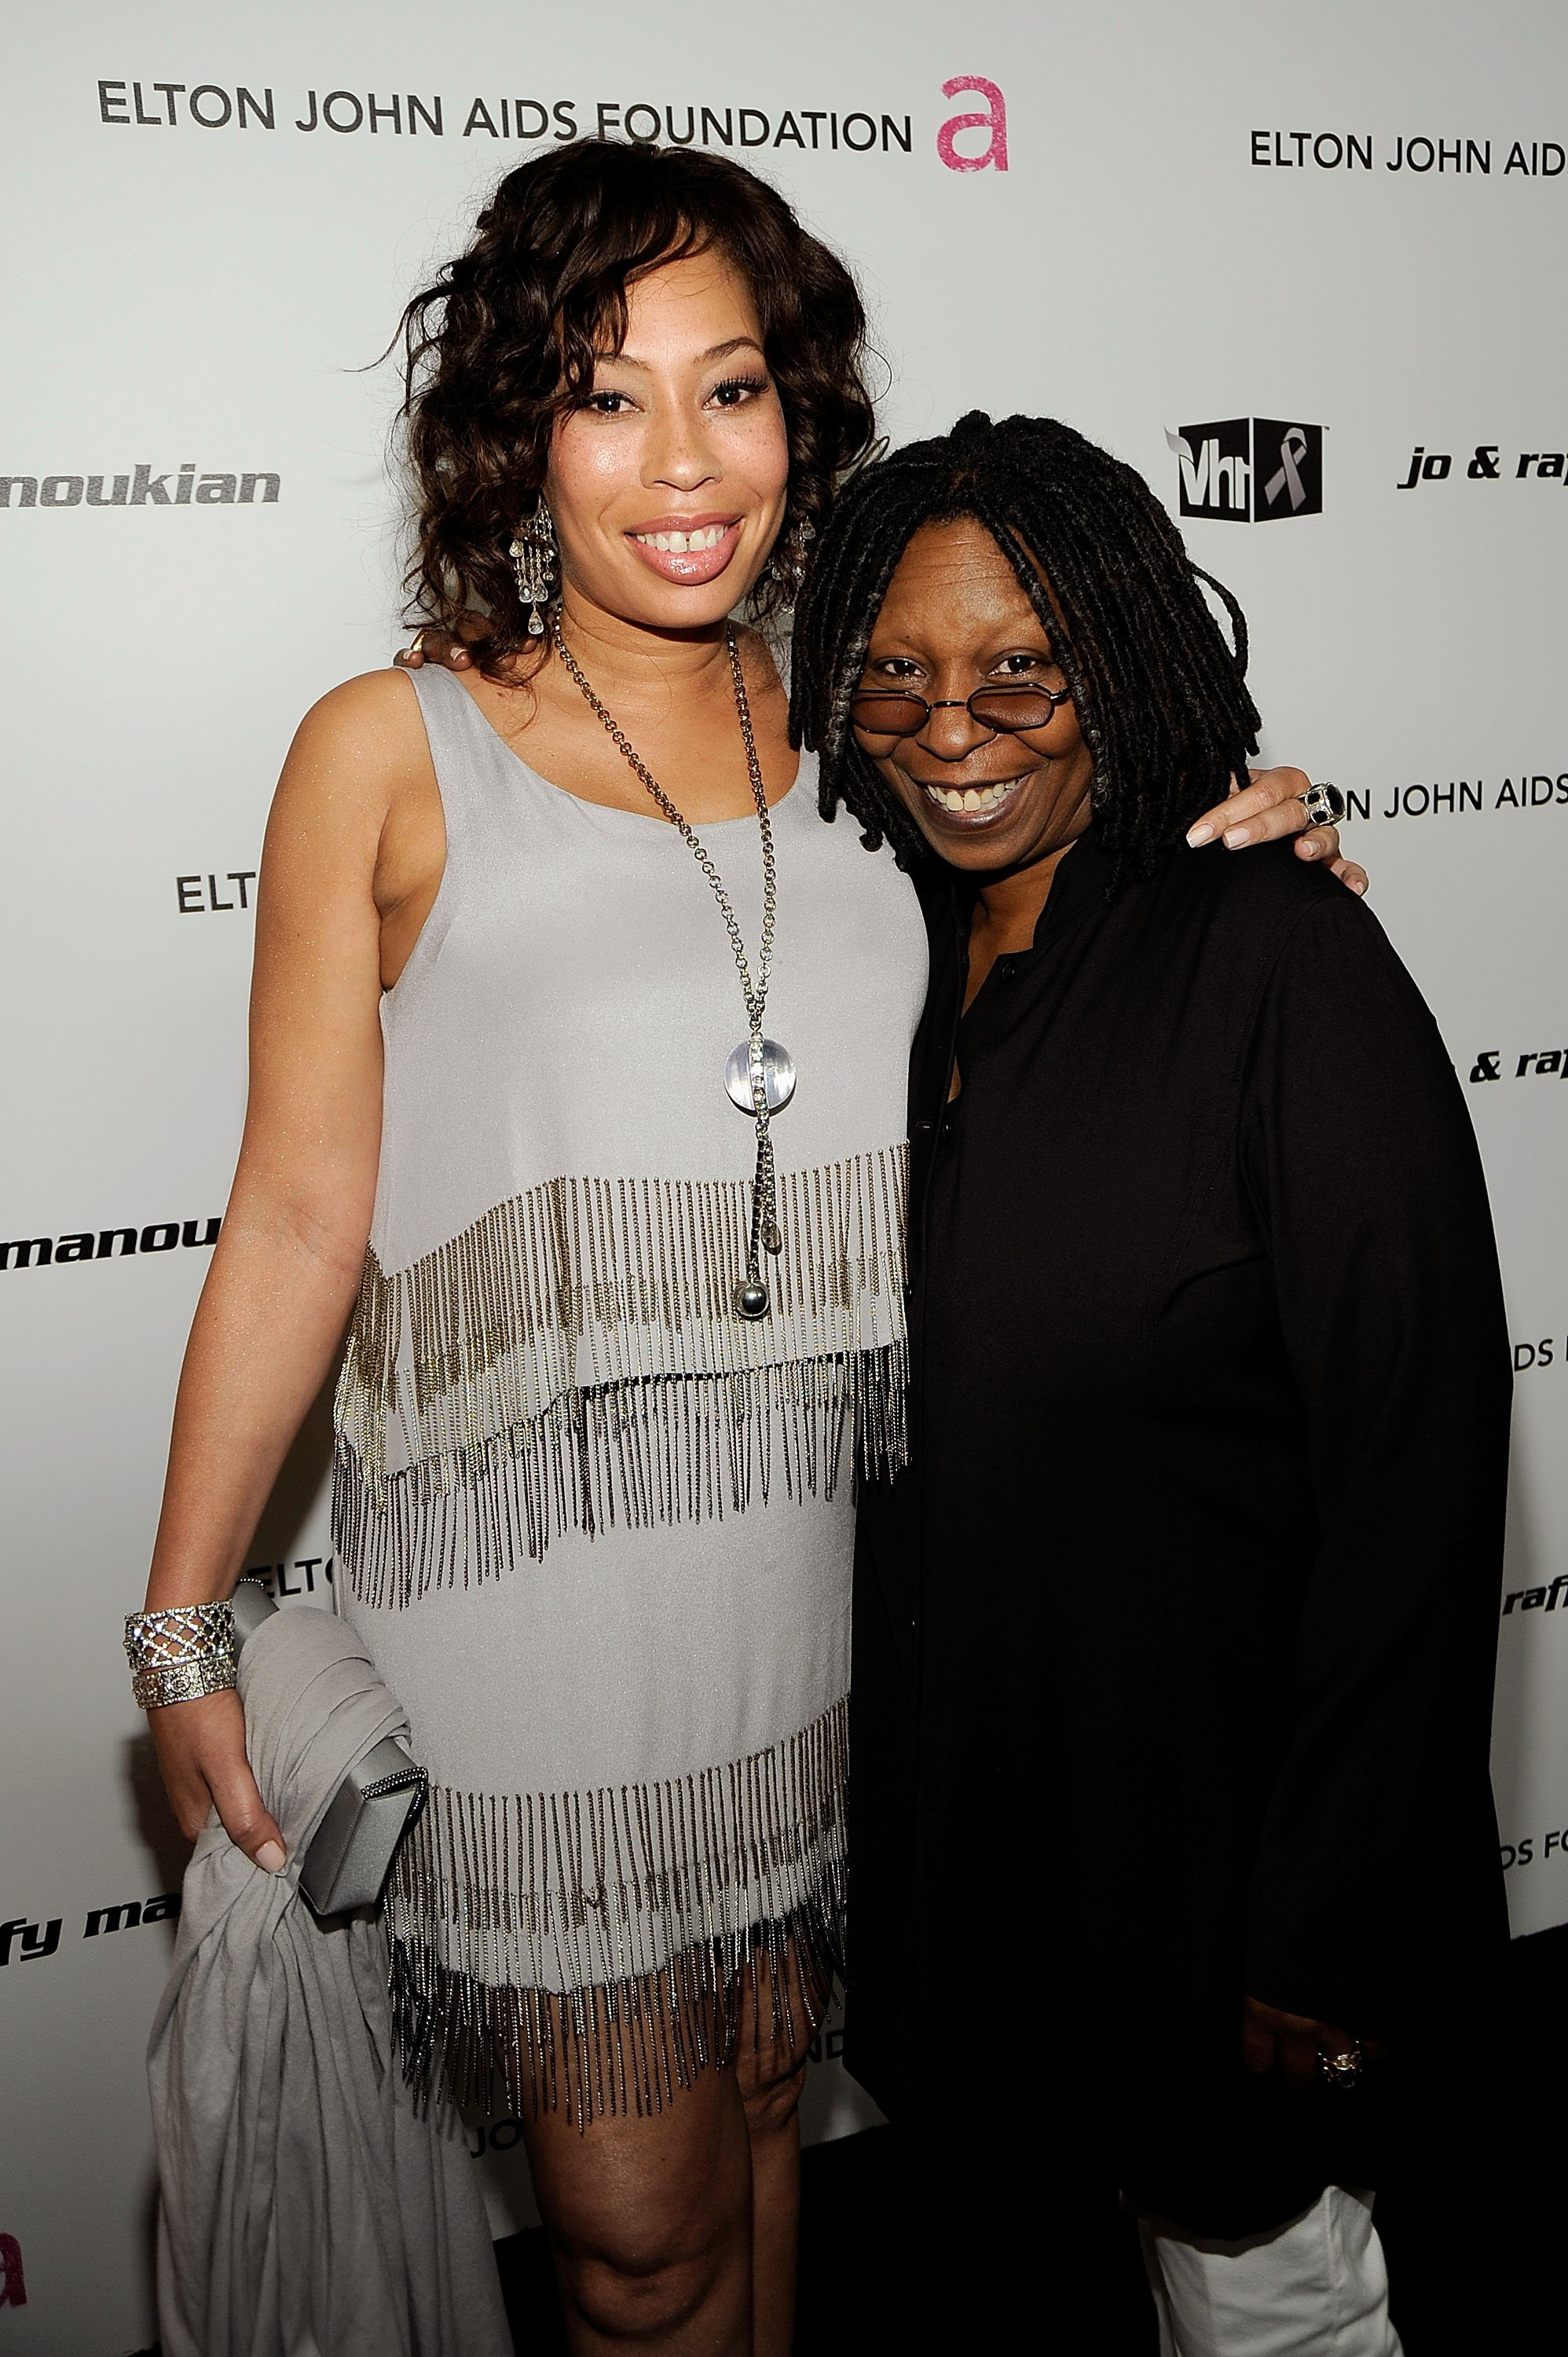 Whoopi Goldberg & Alex Martin at the 17th Annual Elton John AIDS Foundation Oscar Party in New York on Feb. 22, 2009. |Photo: Getty Images